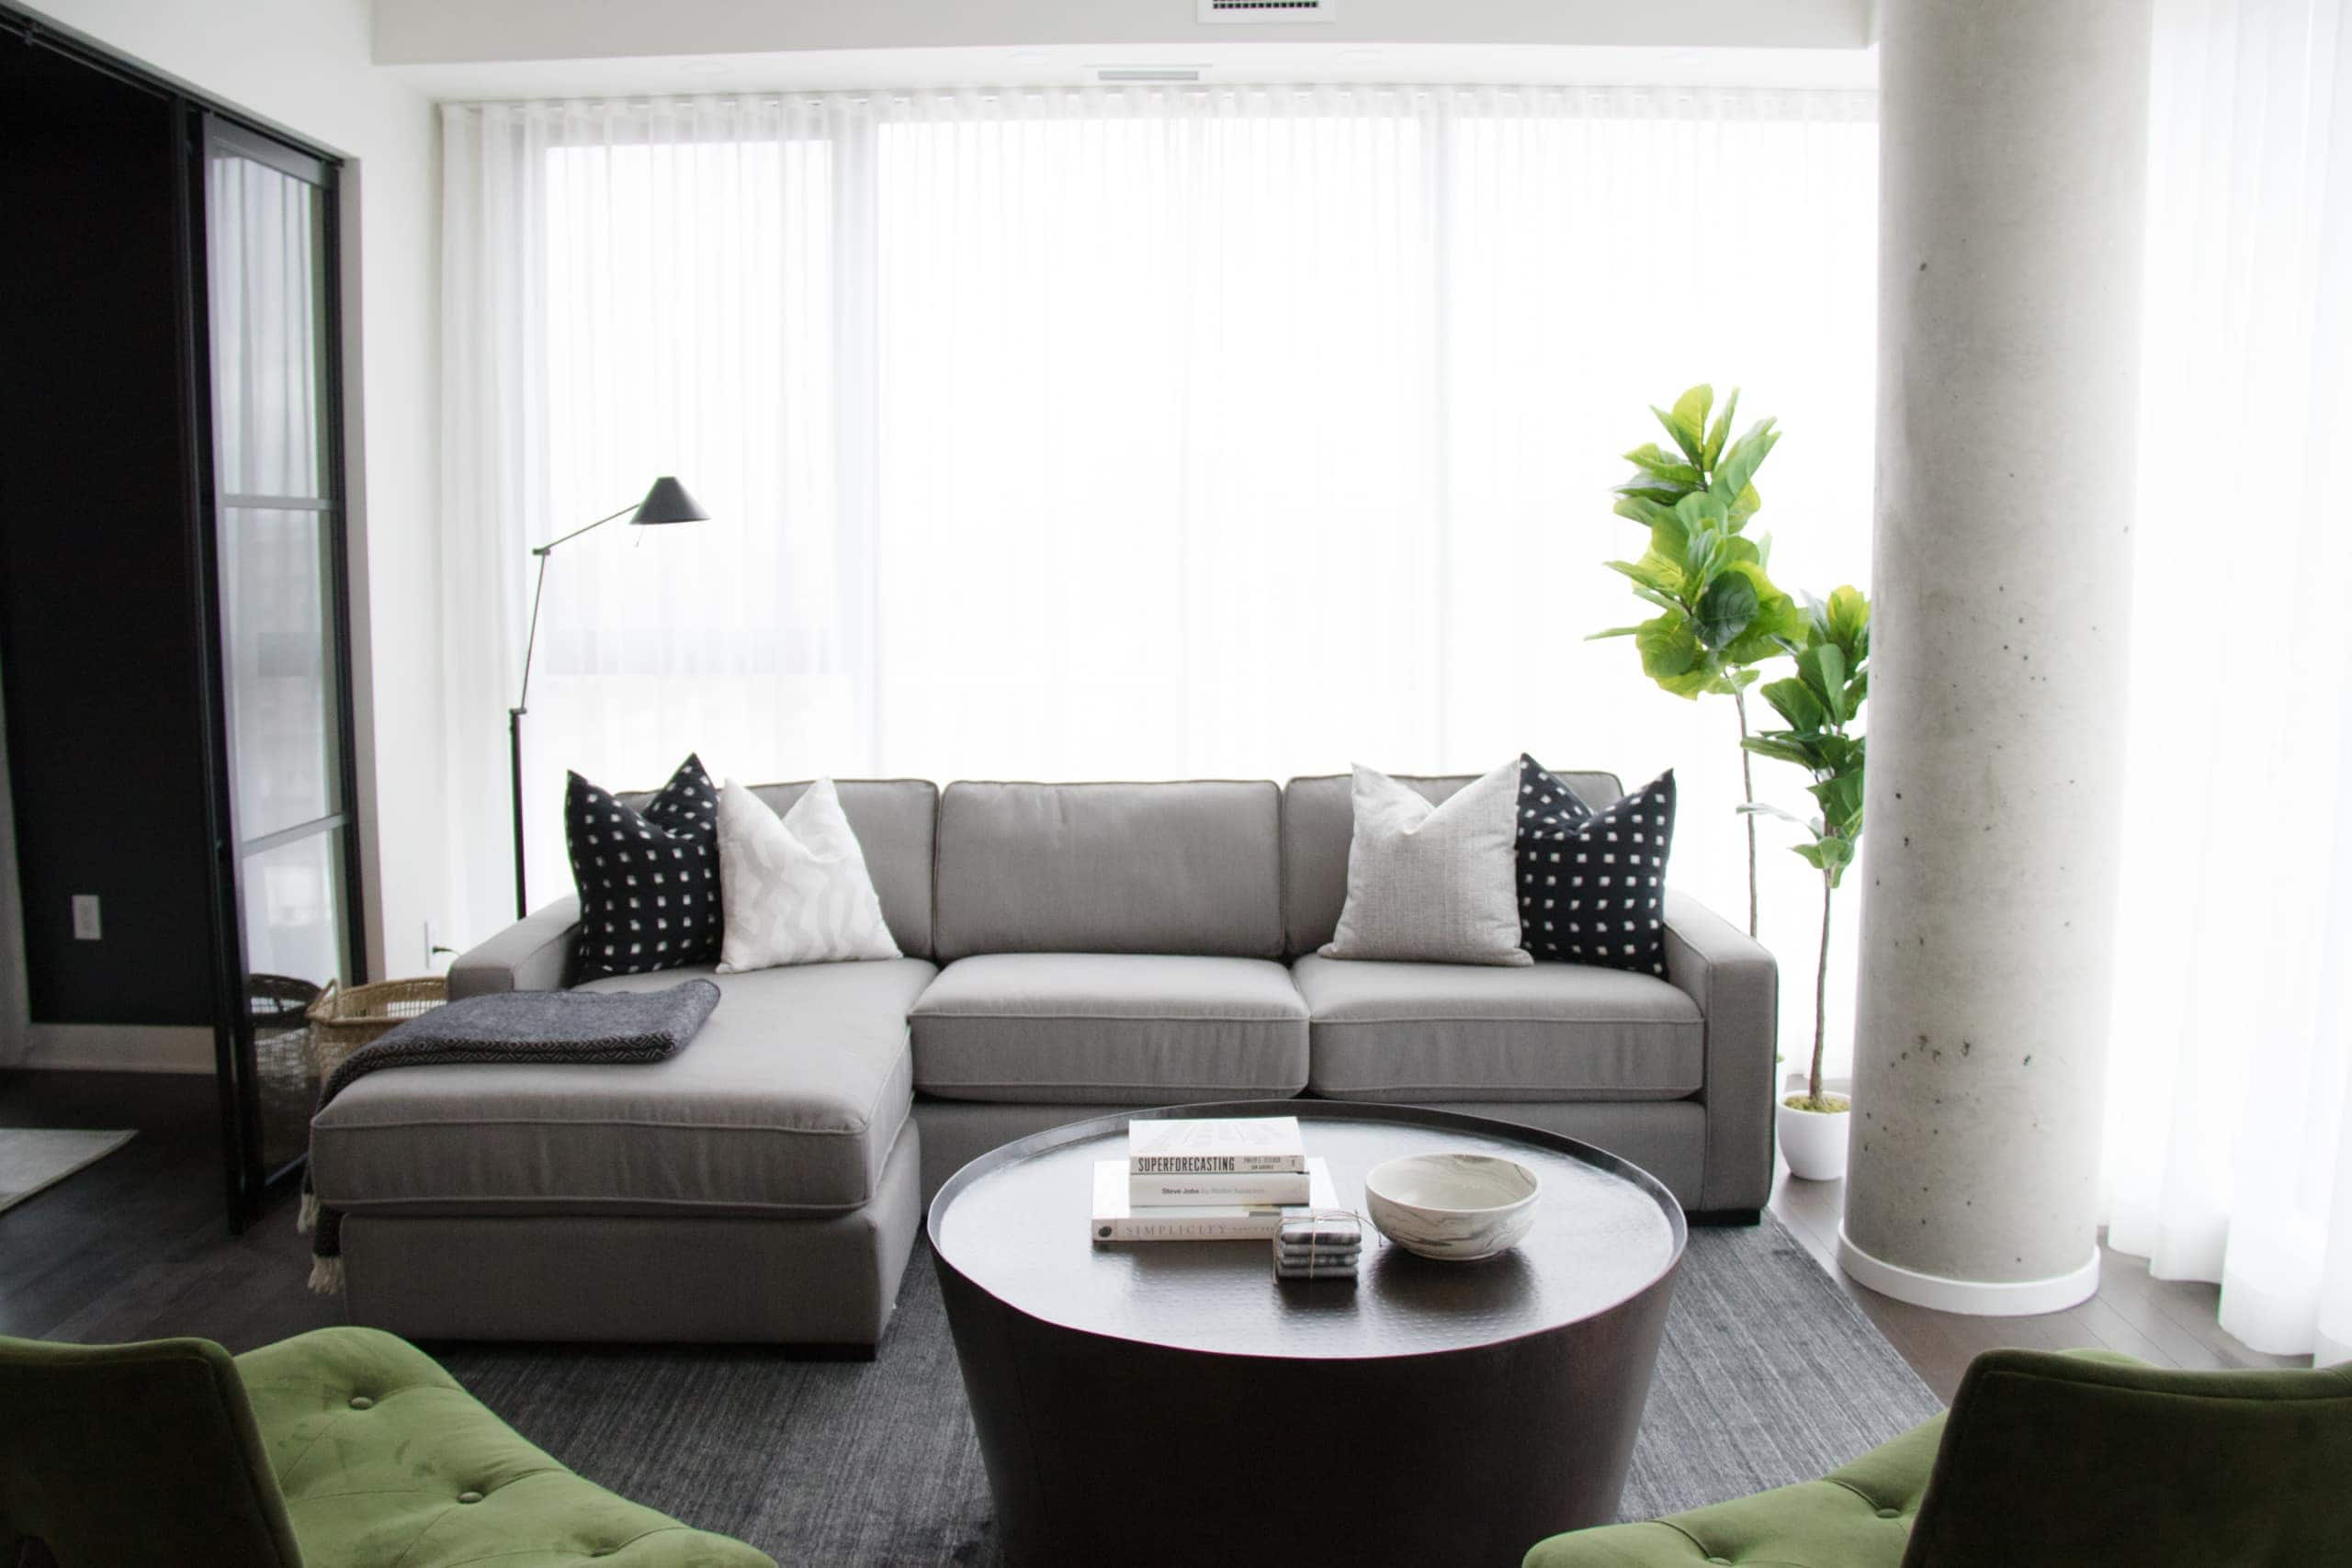 Modern living room with green chairs in the corners